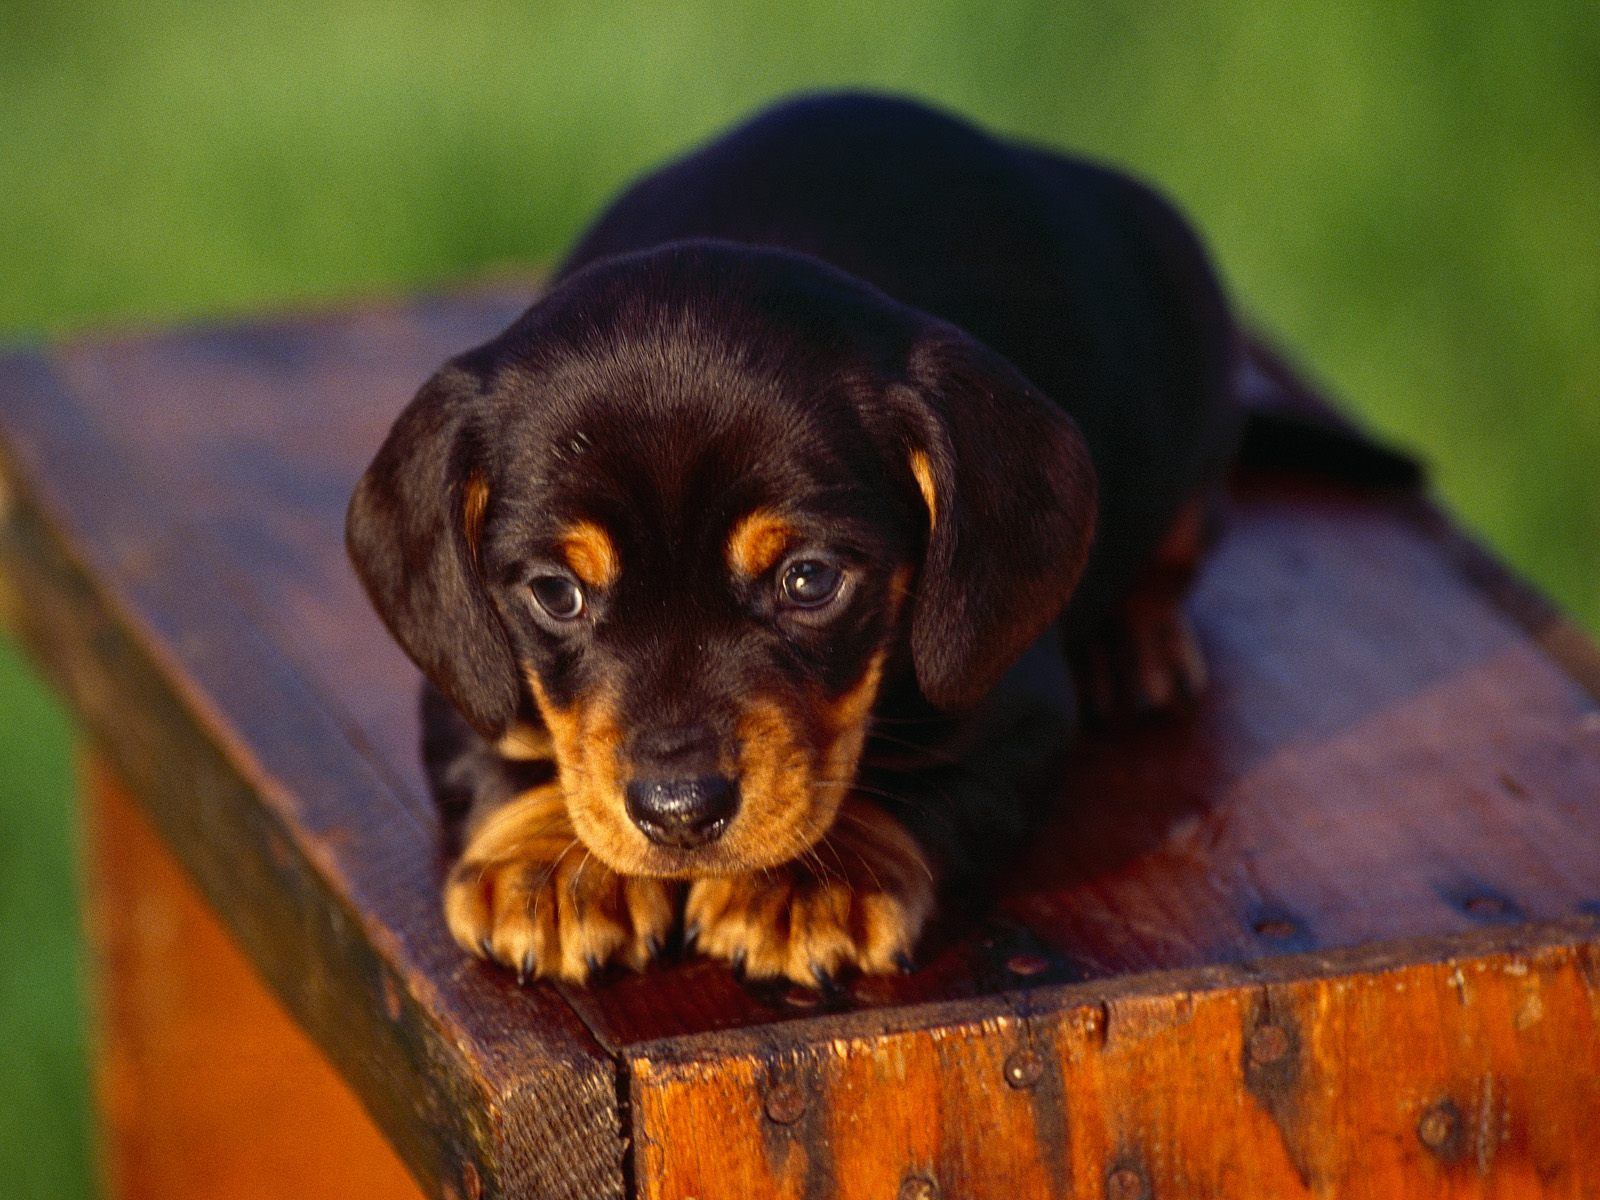 Black_And_Tan_Coonhound_Puppy.jpg